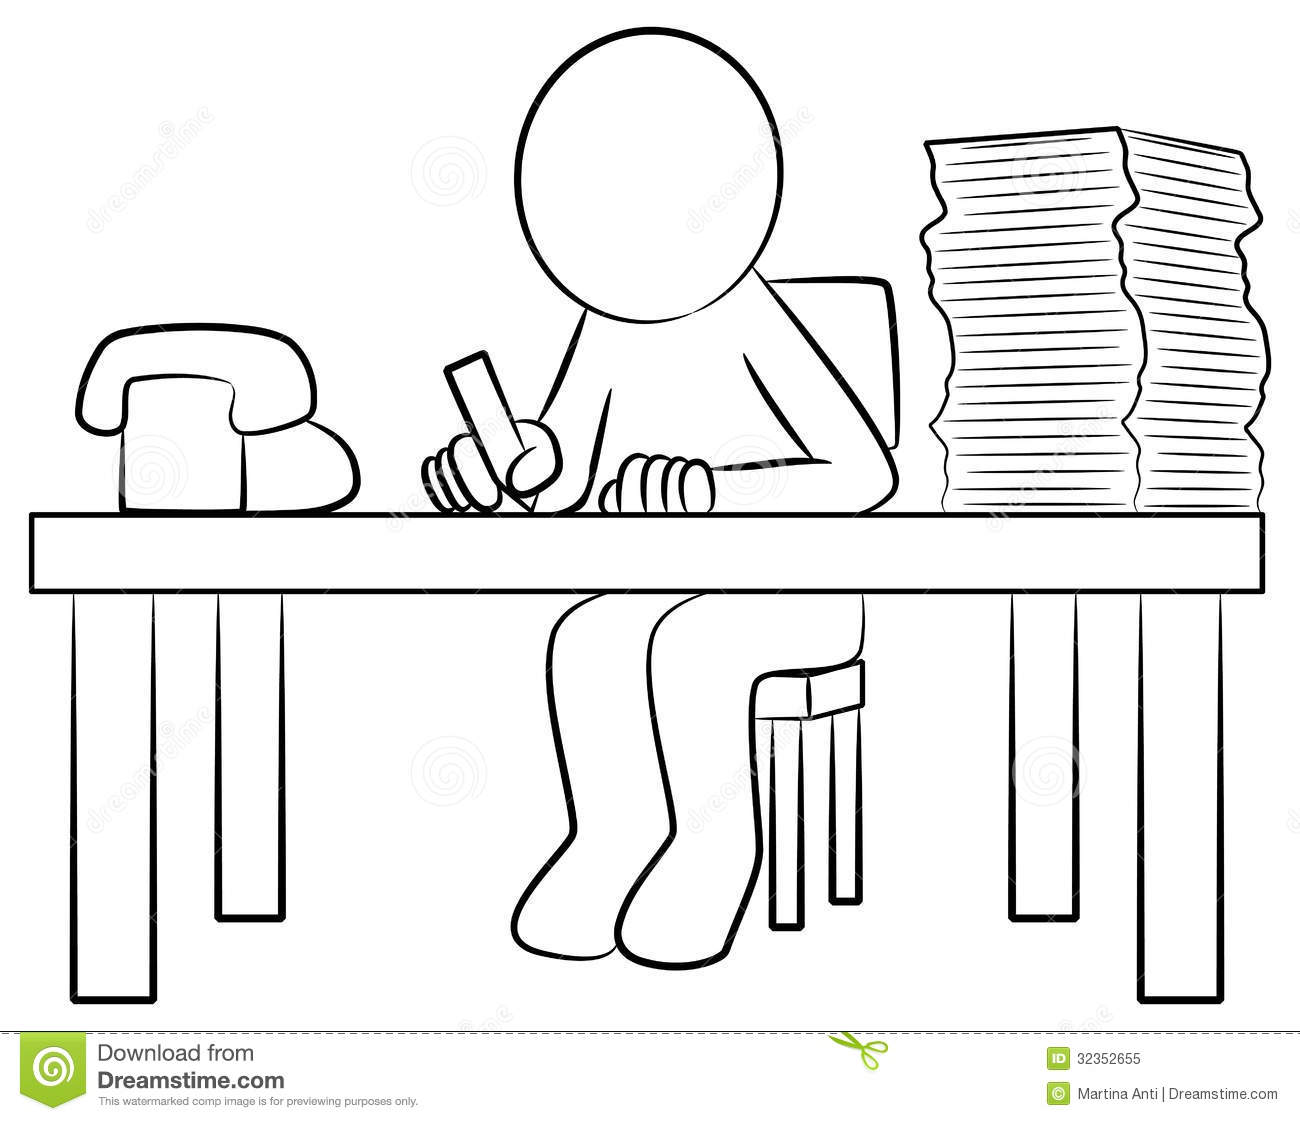 Schreibtisch clipart  Cartoon Office Worker His Desk Stock Illustrations – 435 Cartoon ...